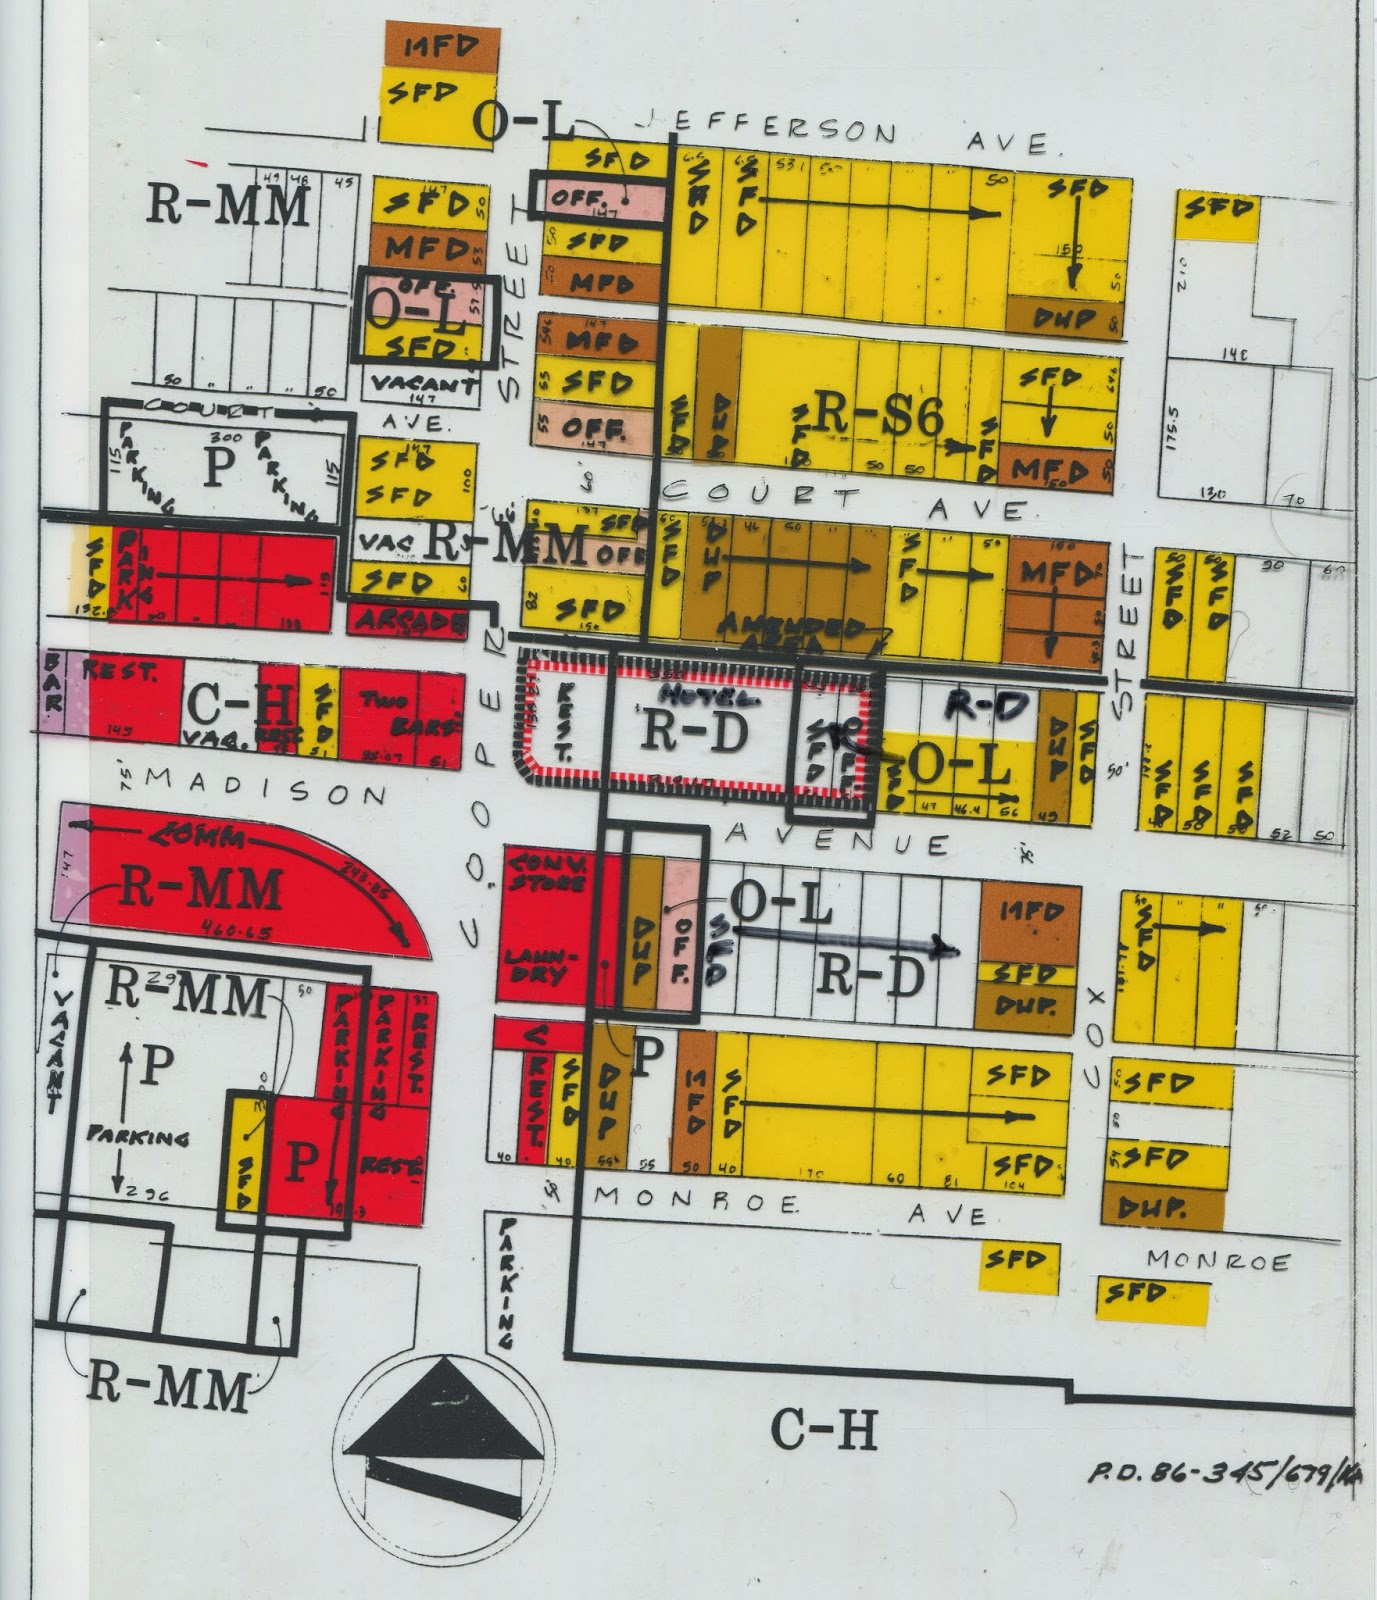 zoning map of the area in 1986 shows the wide variety of zoning and land uses in the area much of which remains today